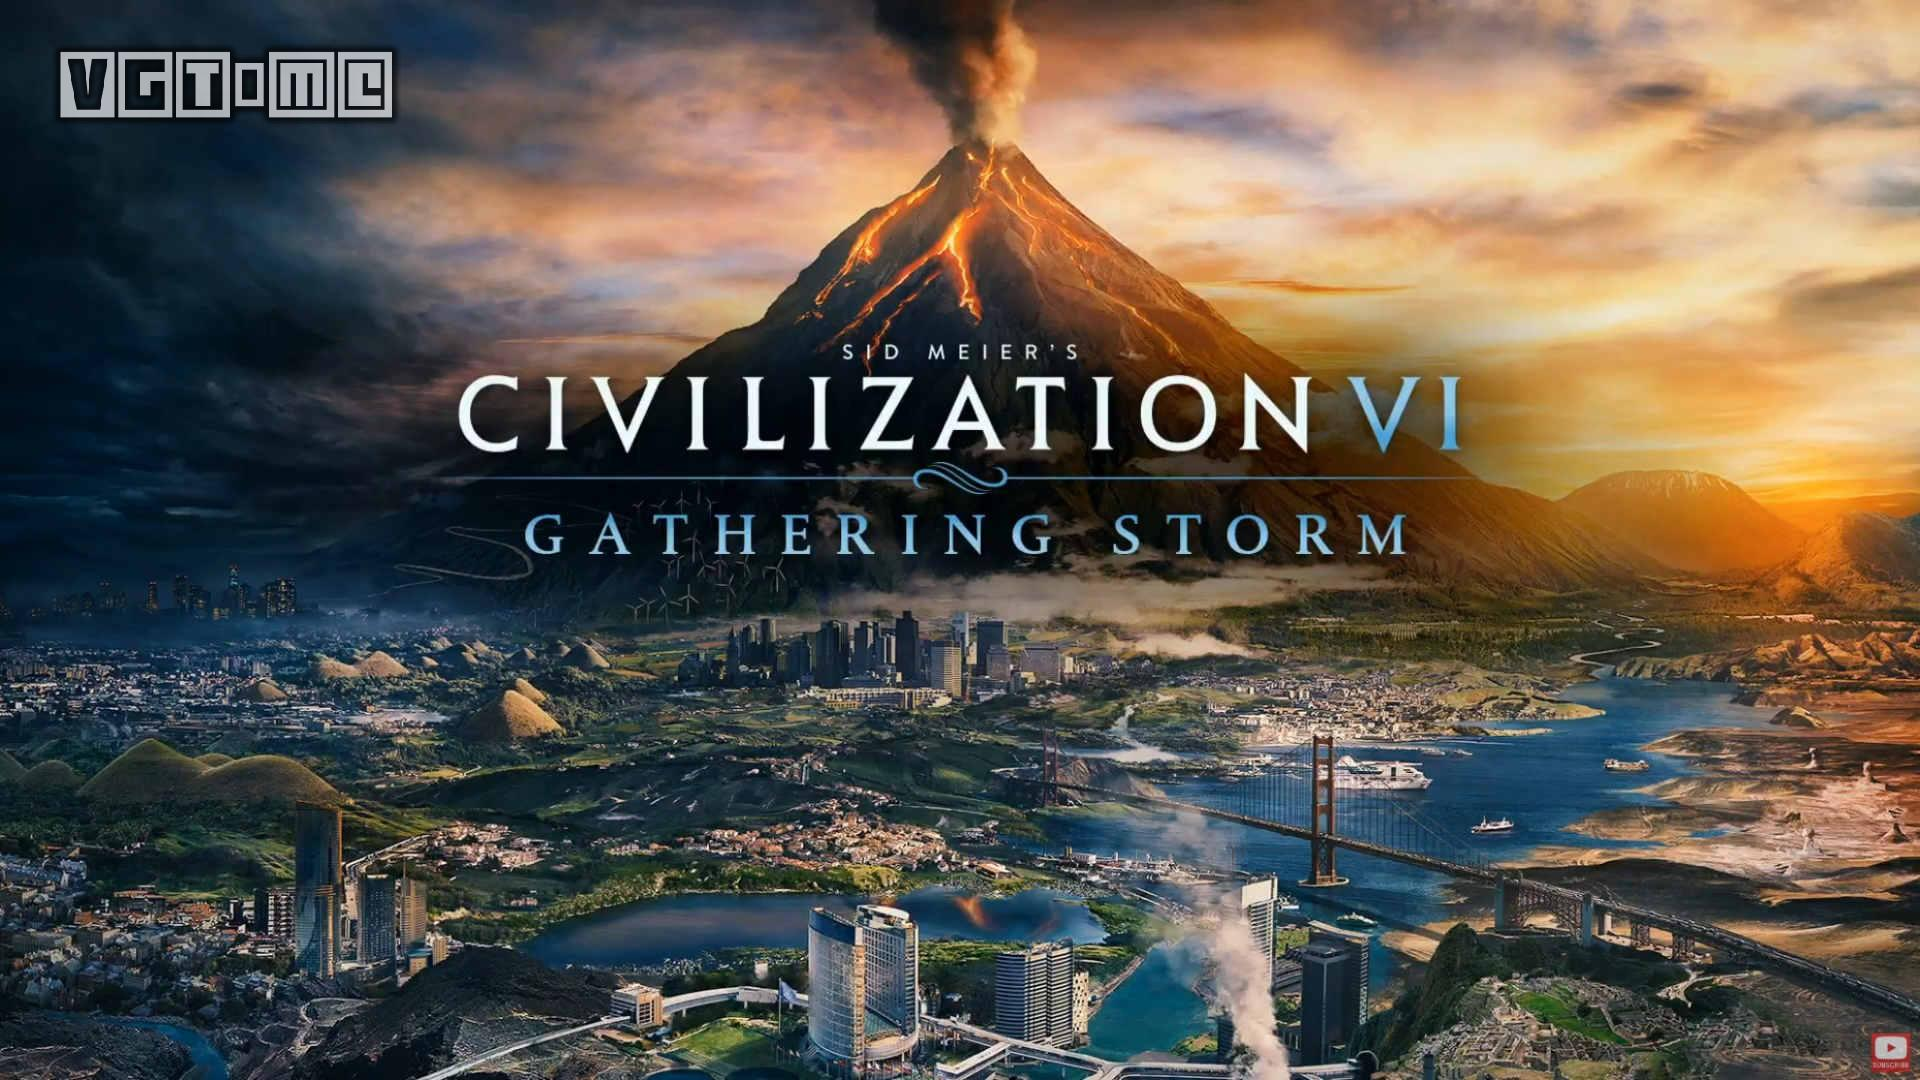 Steam week sales: the civilization 6 regression